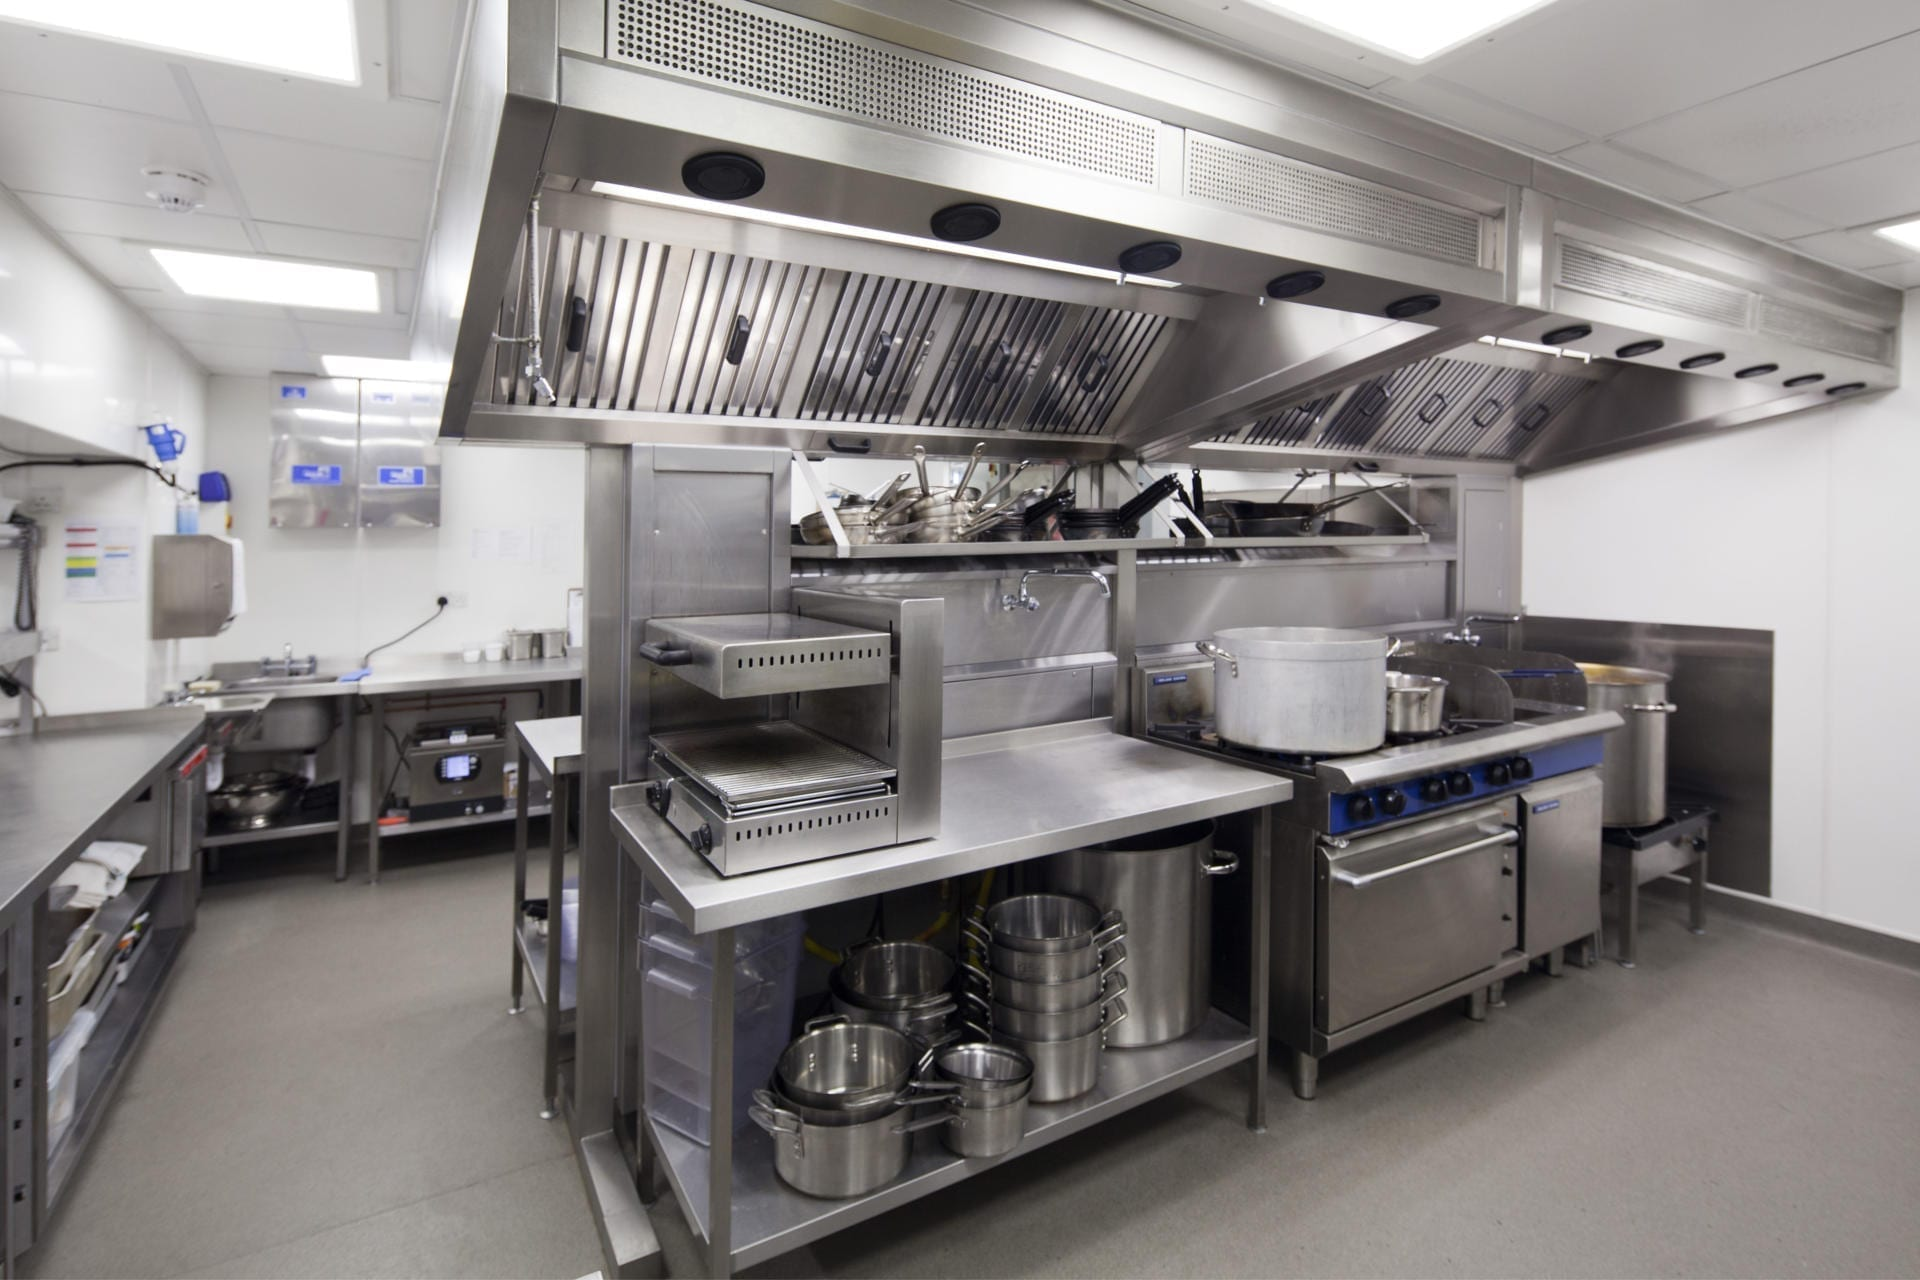 Montpellier-Chapter-Cheltenham-Restaurant-Kitchen-Front-of-house-Servery-Food-Display-Pizza-spacecatering_8